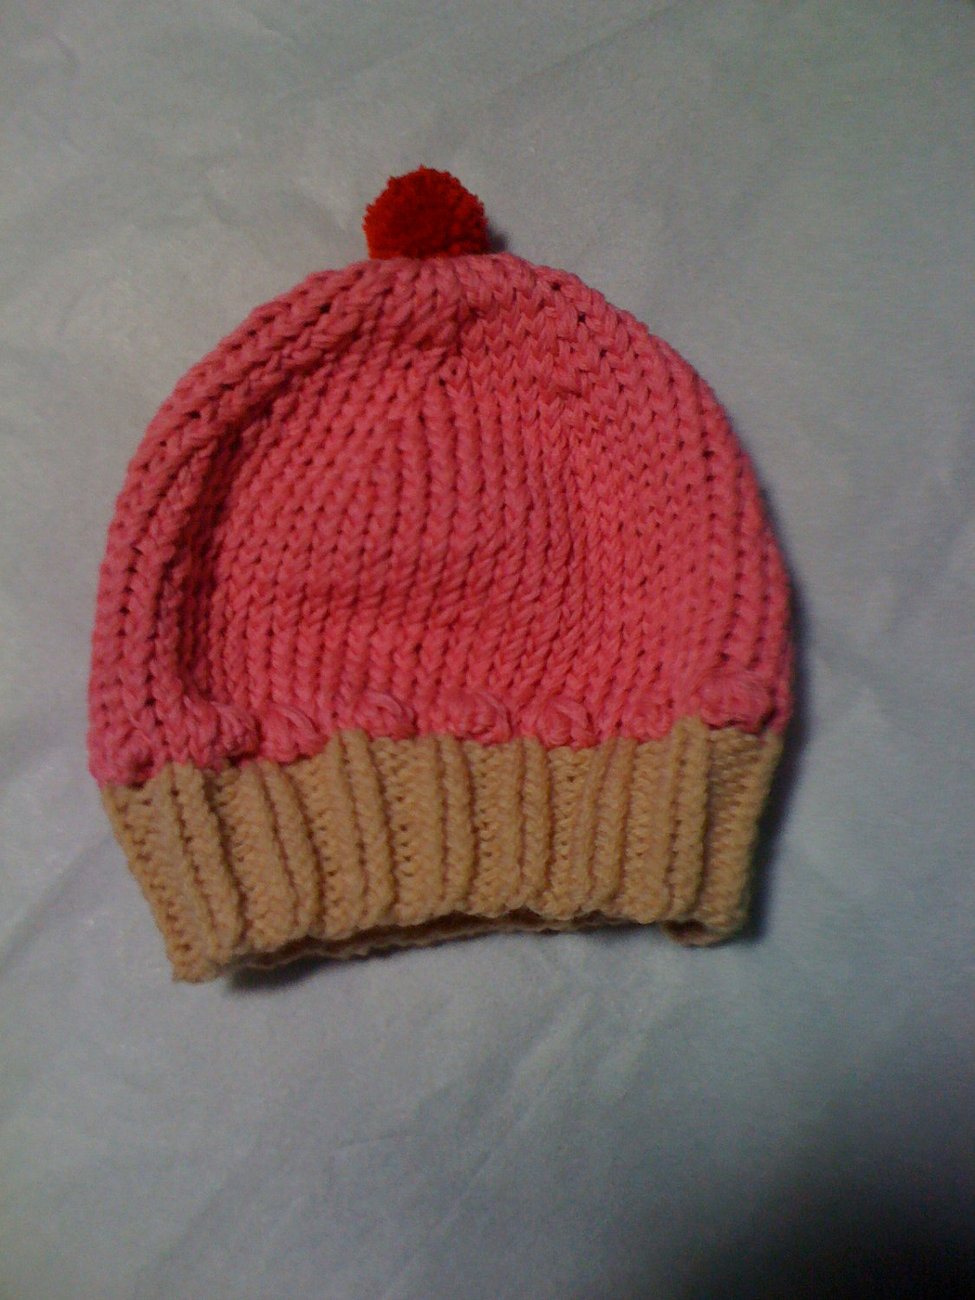 knit cupcake hat your color choice